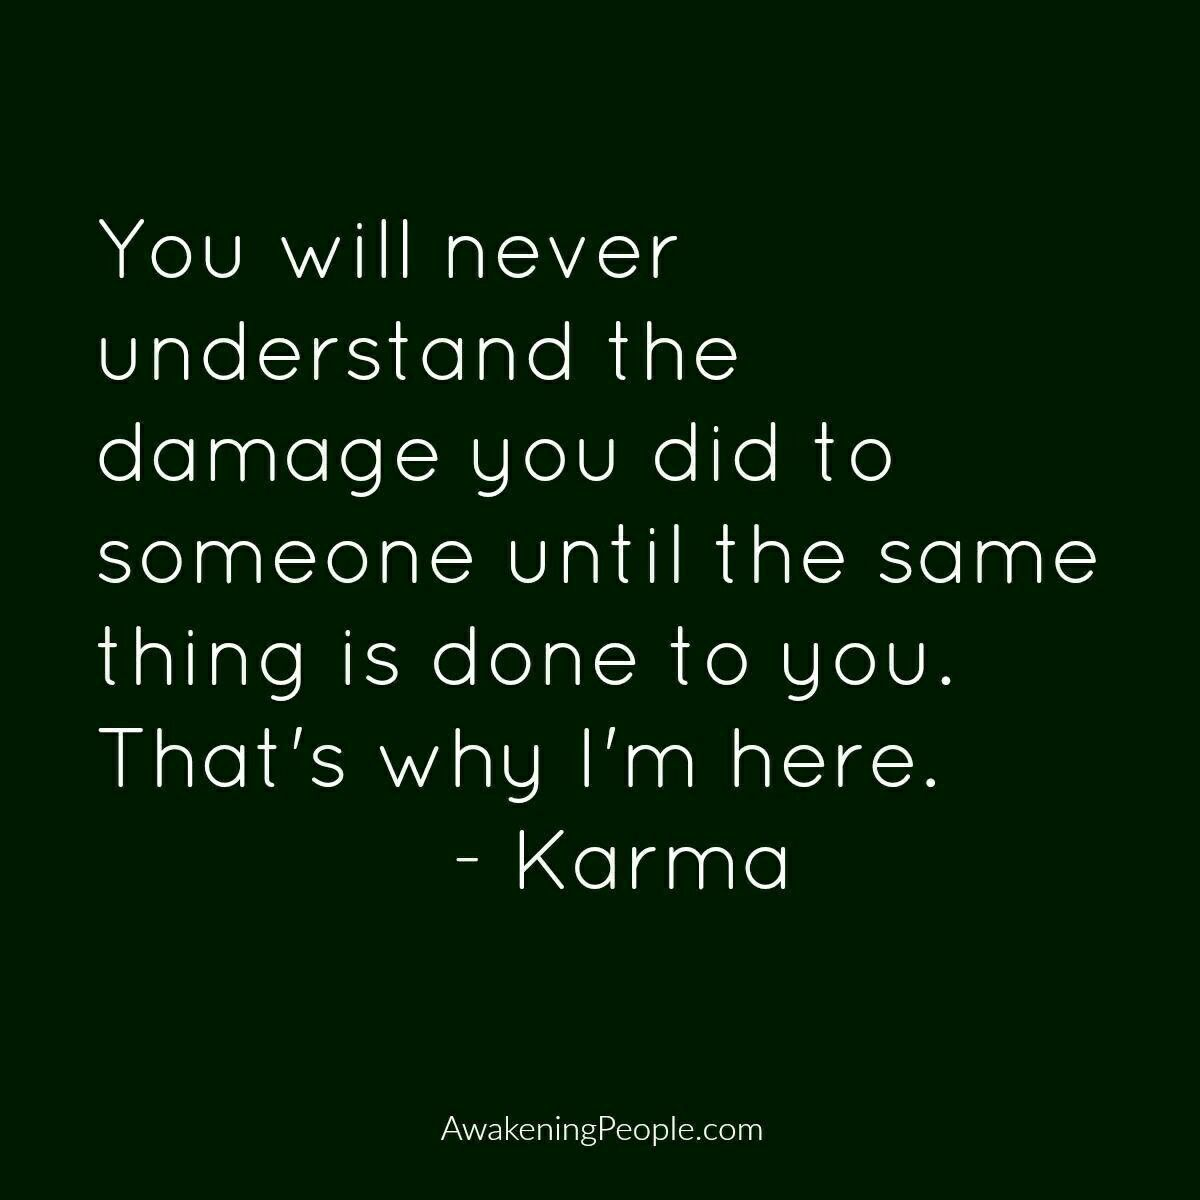 Get A Life Quotes Pinsusan Colvell On Quotes  Pinterest  Karma Truths And Deceit